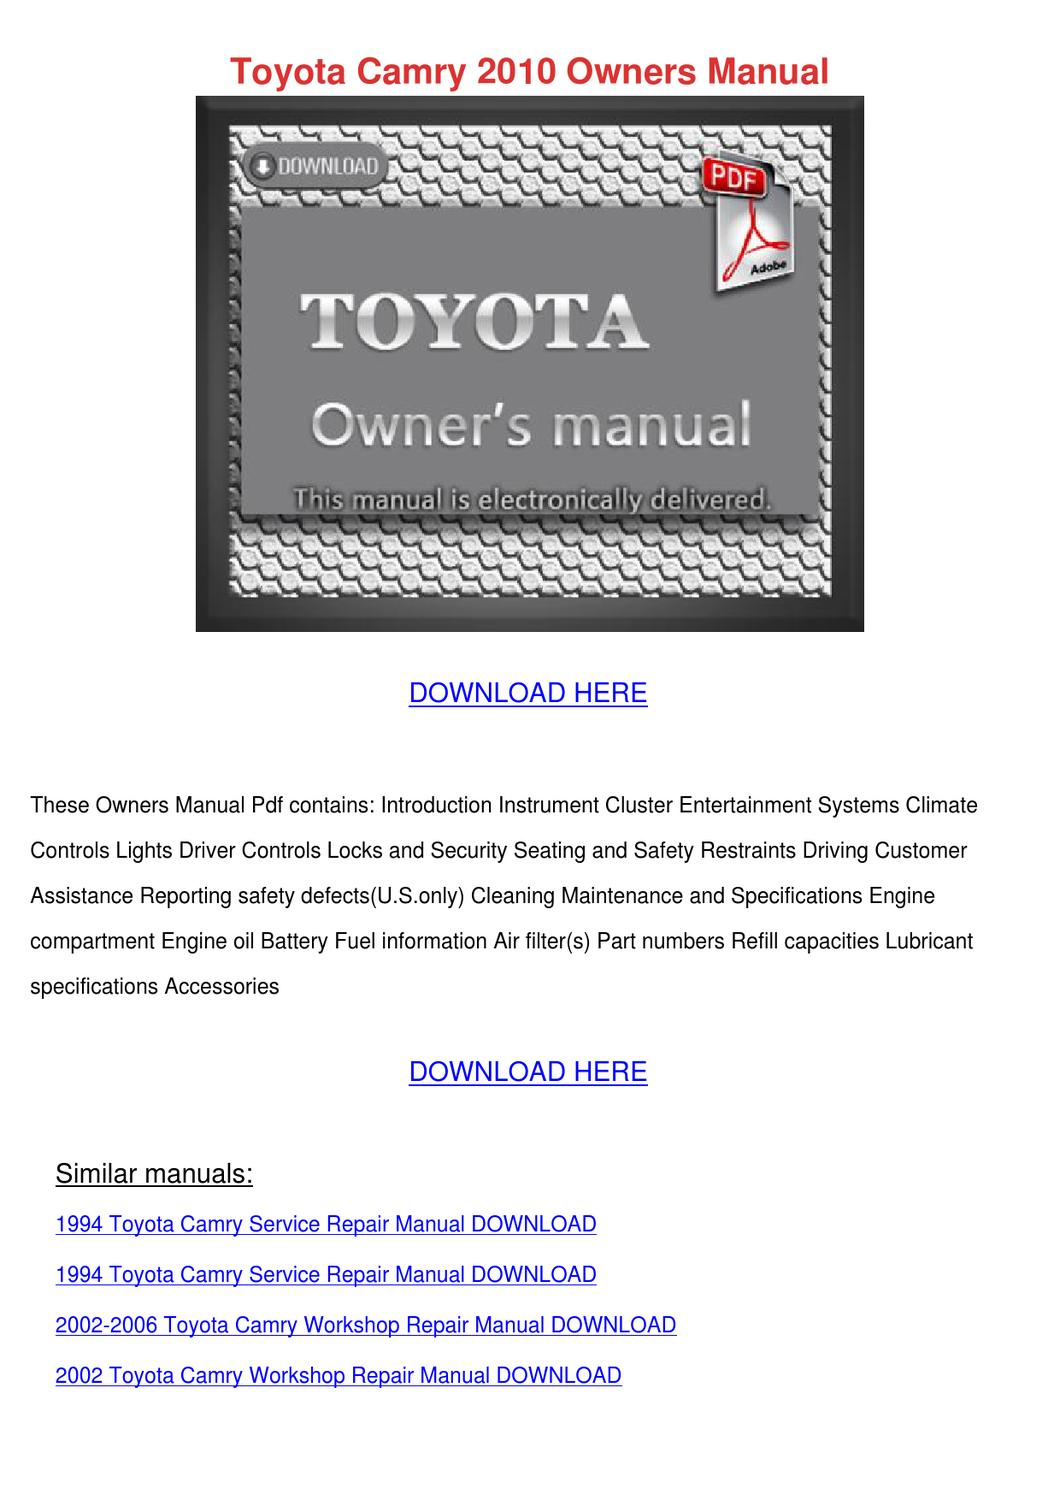 toyota camry 2010 owners manual by winnievenegas